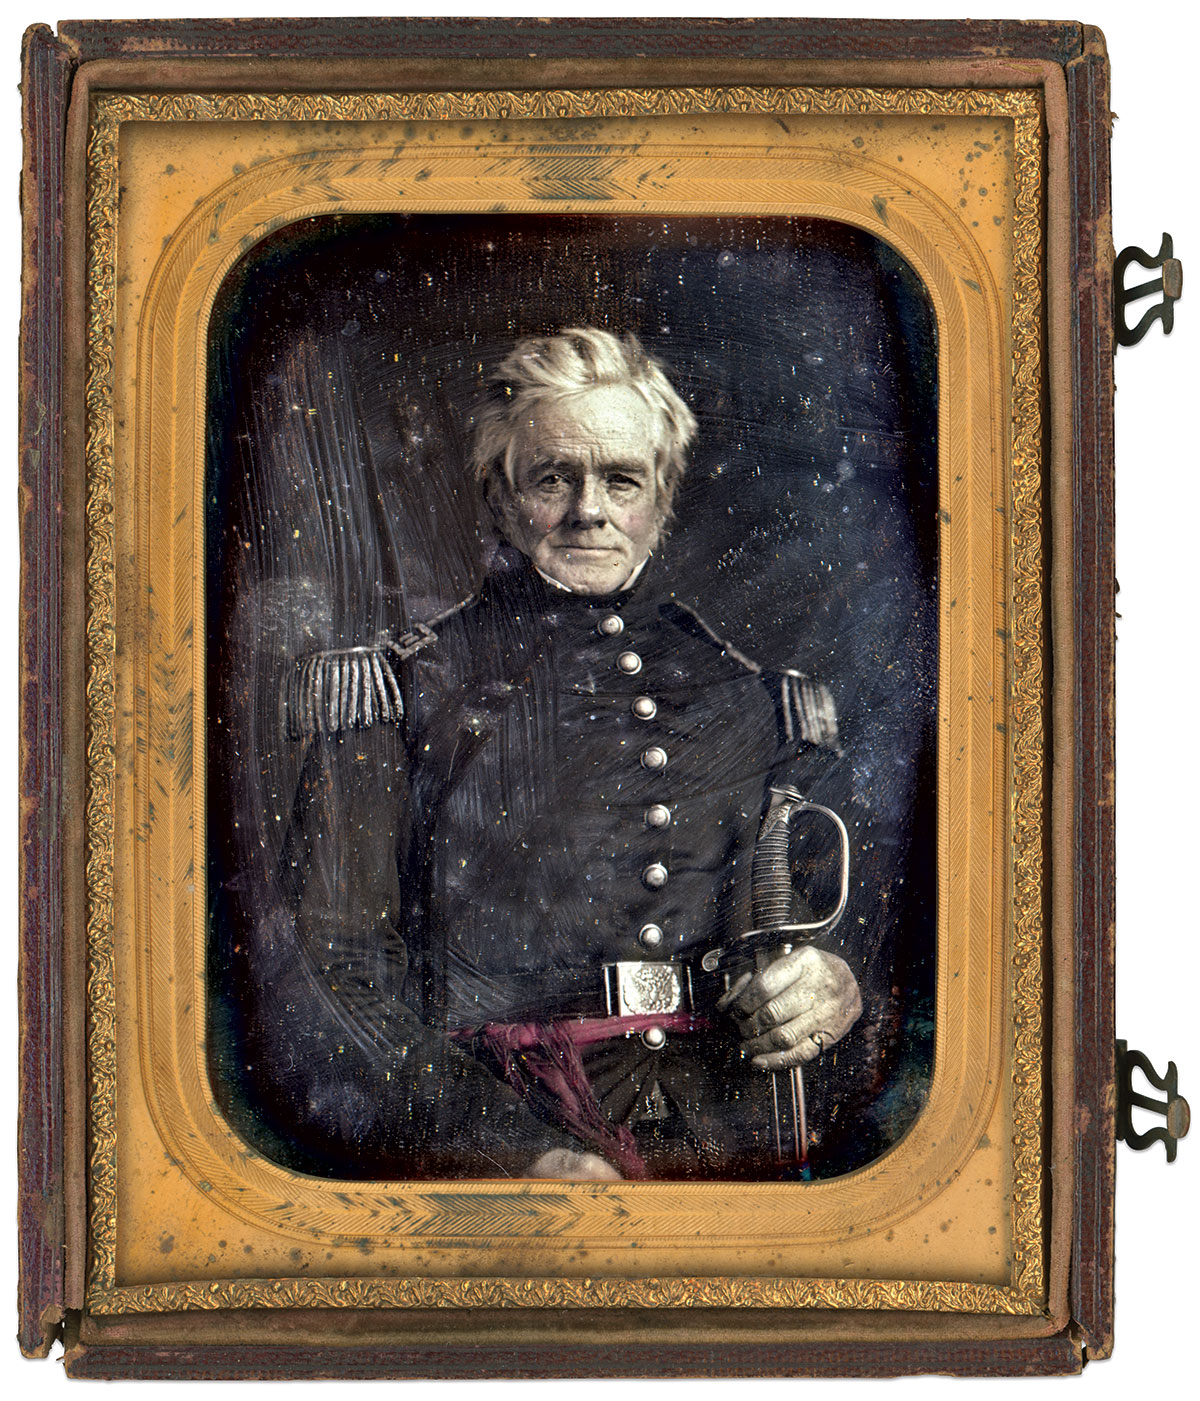 Half-plate daguerreotype by an anonymous photographer. Rich Jahn Collection.